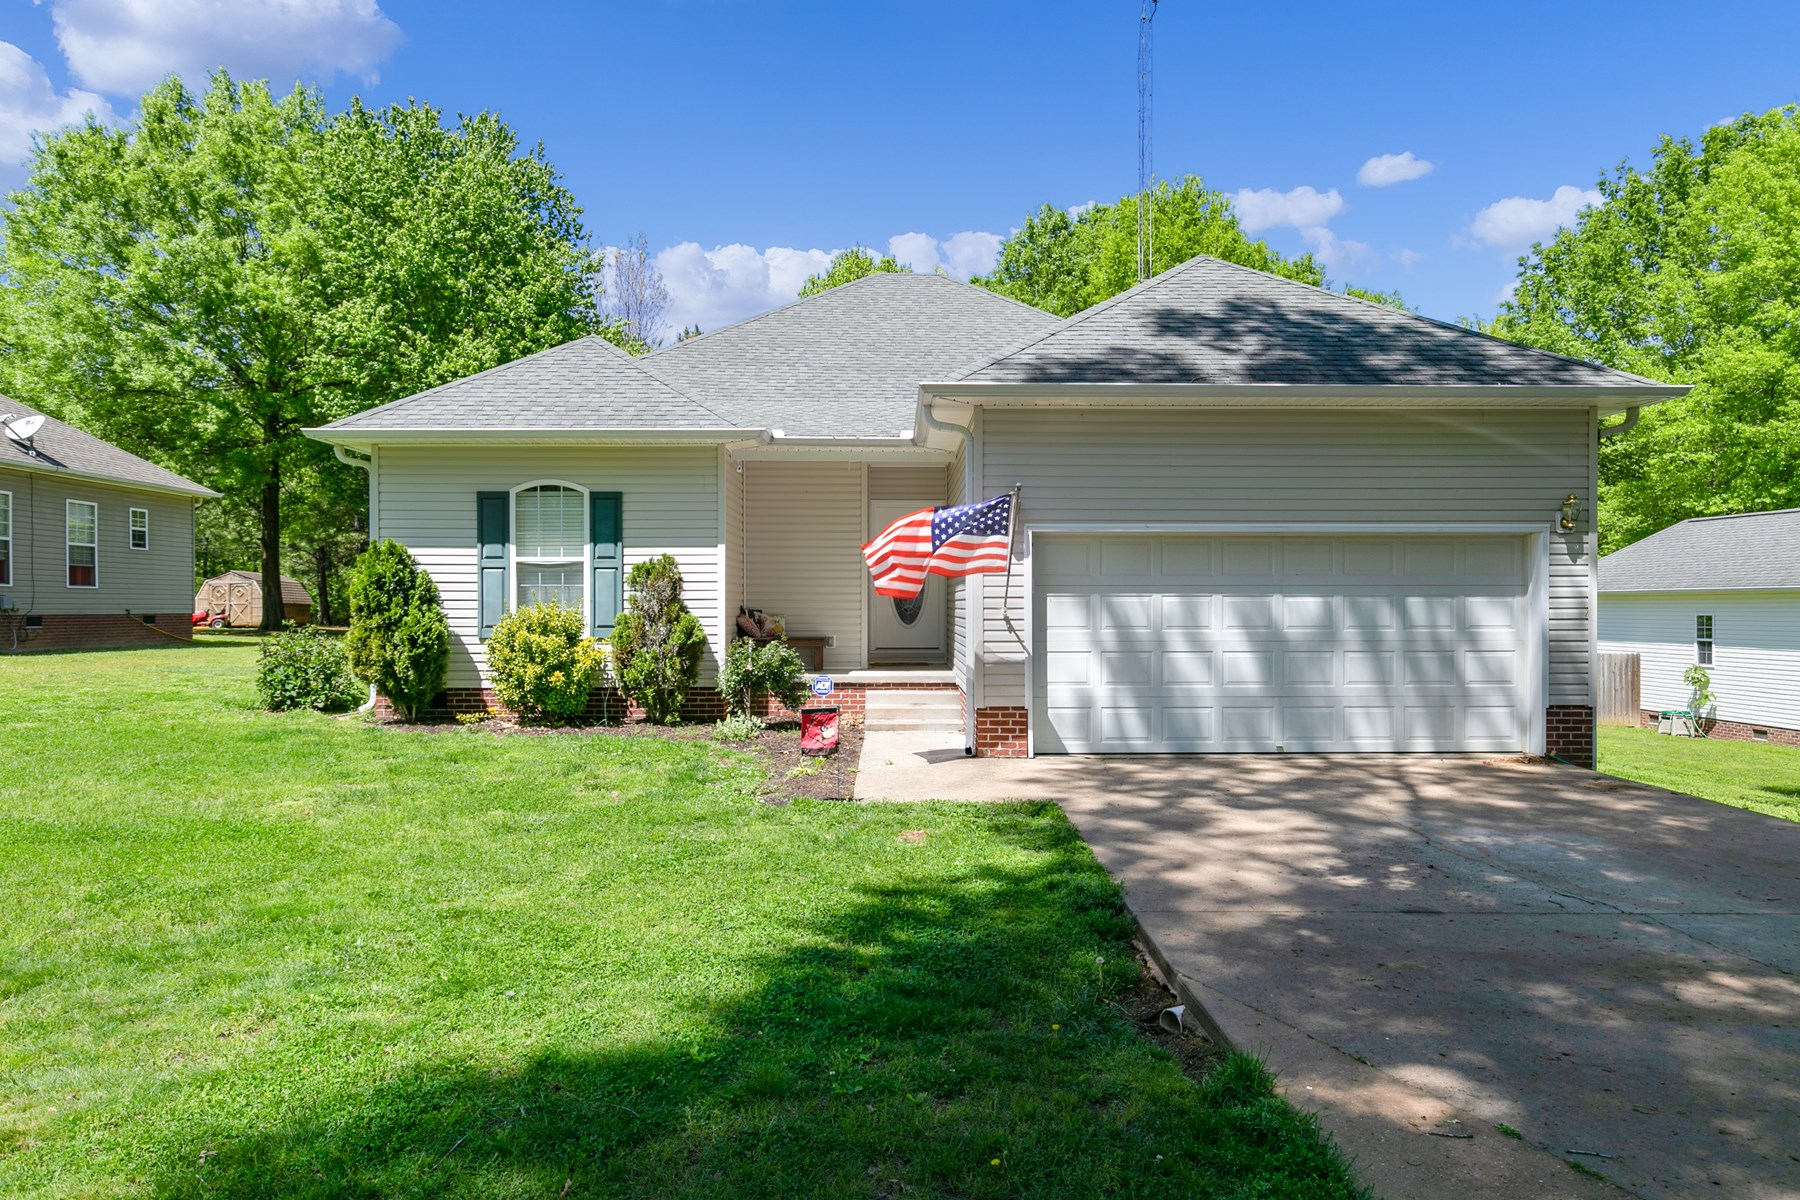 3 BR / 2BA Home for Sale in Milan, TN